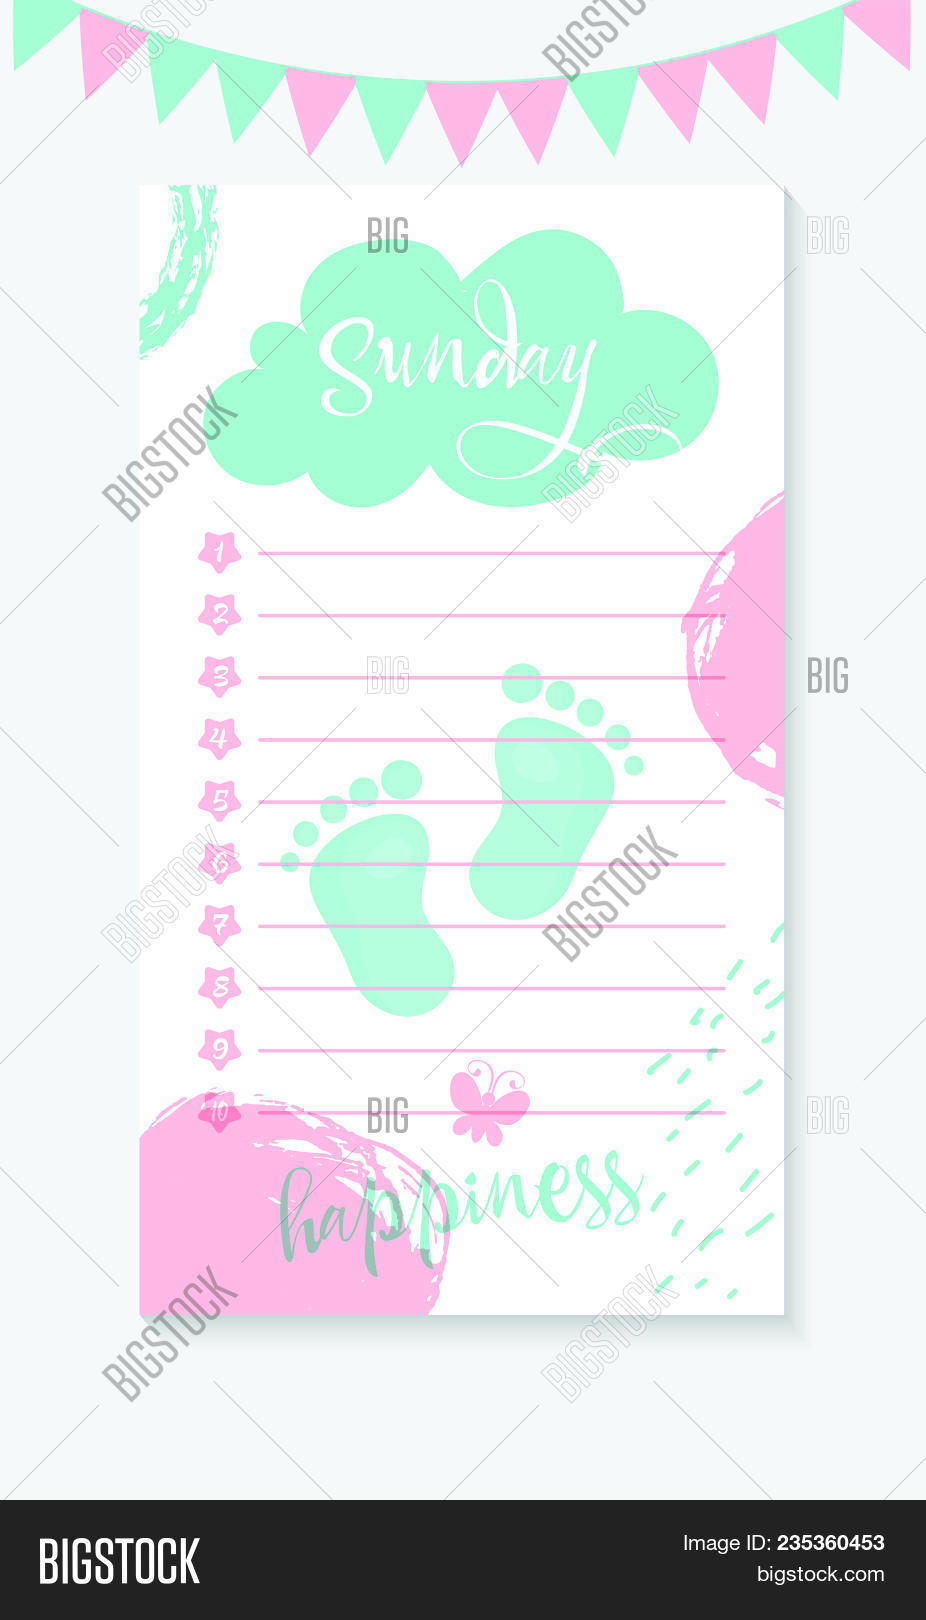 monday daily do list vector photo free trial bigstock